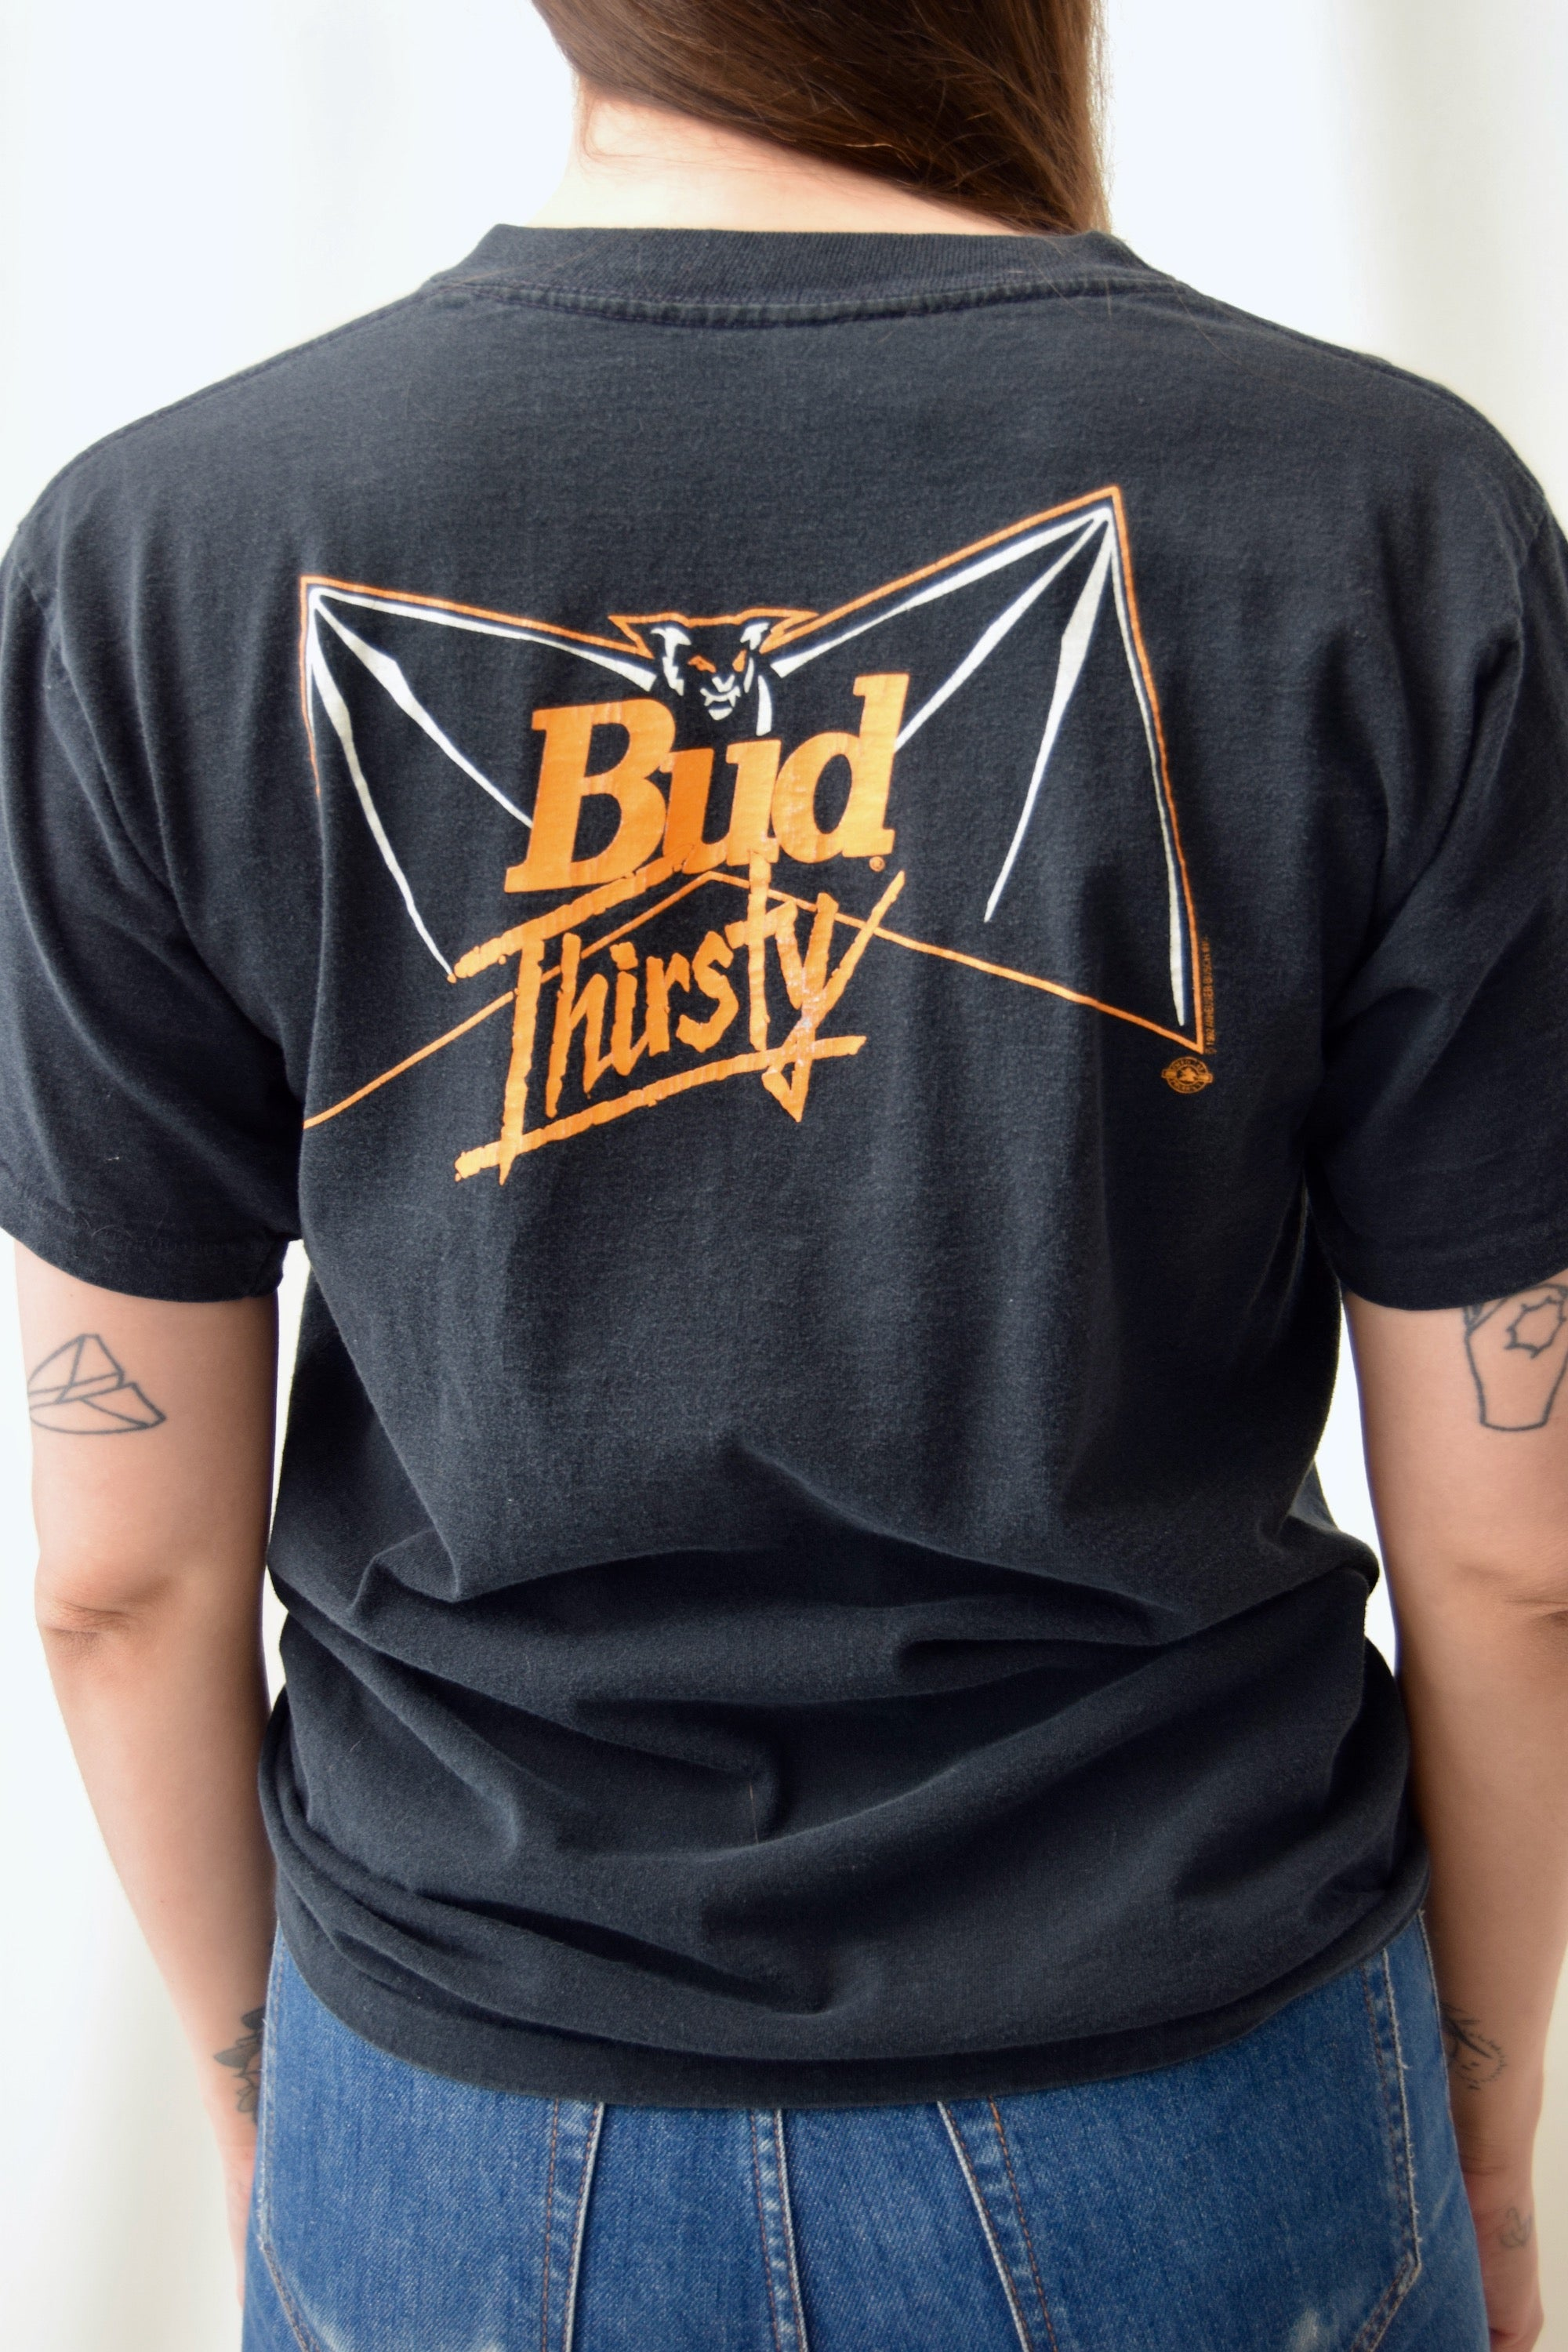 Bud Light Thirsty T-Shirt